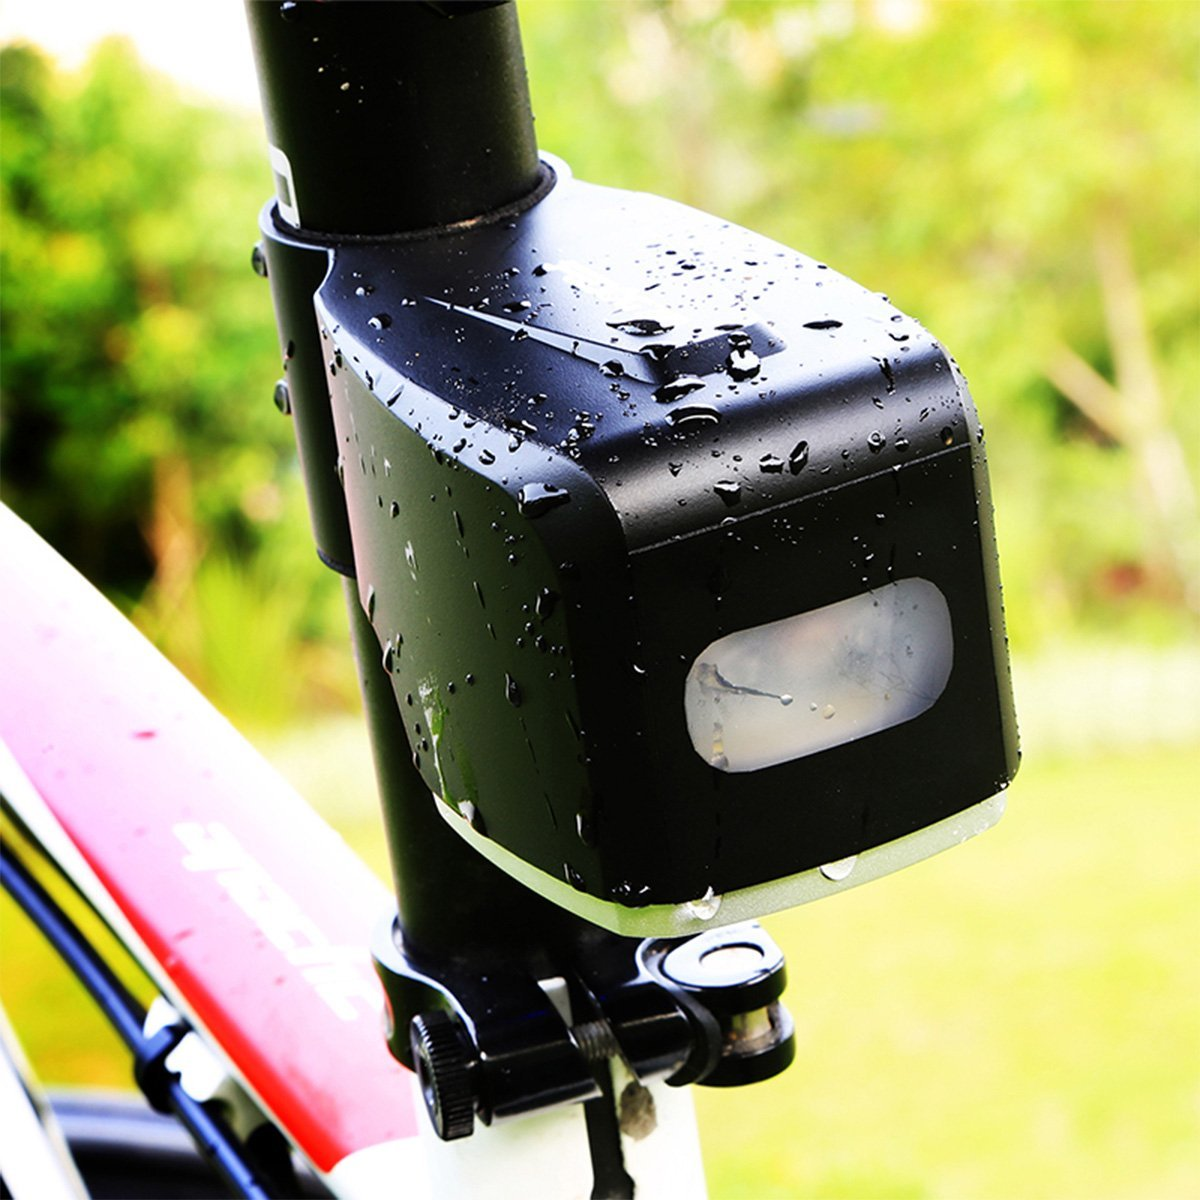 Anti Theft System >> Bike Theft Alarm | Best Bicycle Rear Light